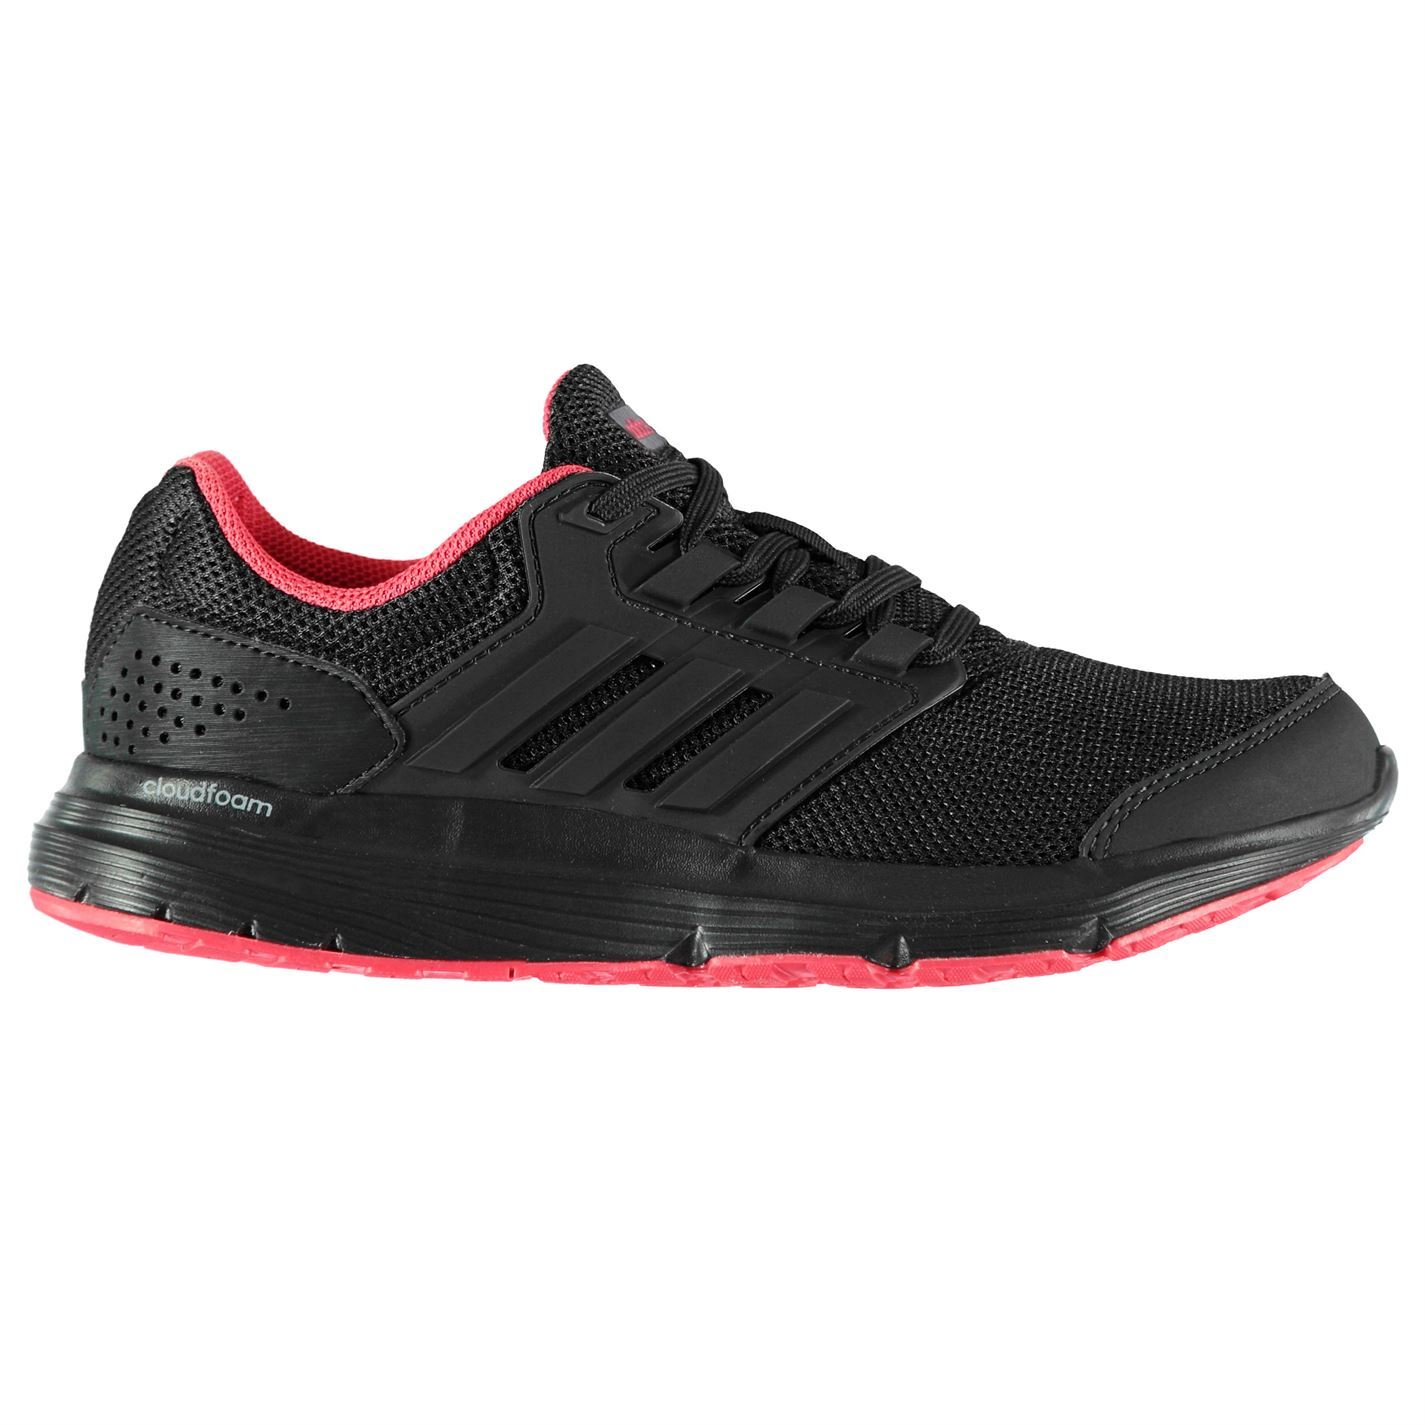 b835817e3168 adidas Galaxy 4 Running Shoes Womens Black Pink Run Jogging Trainers  Sneakers